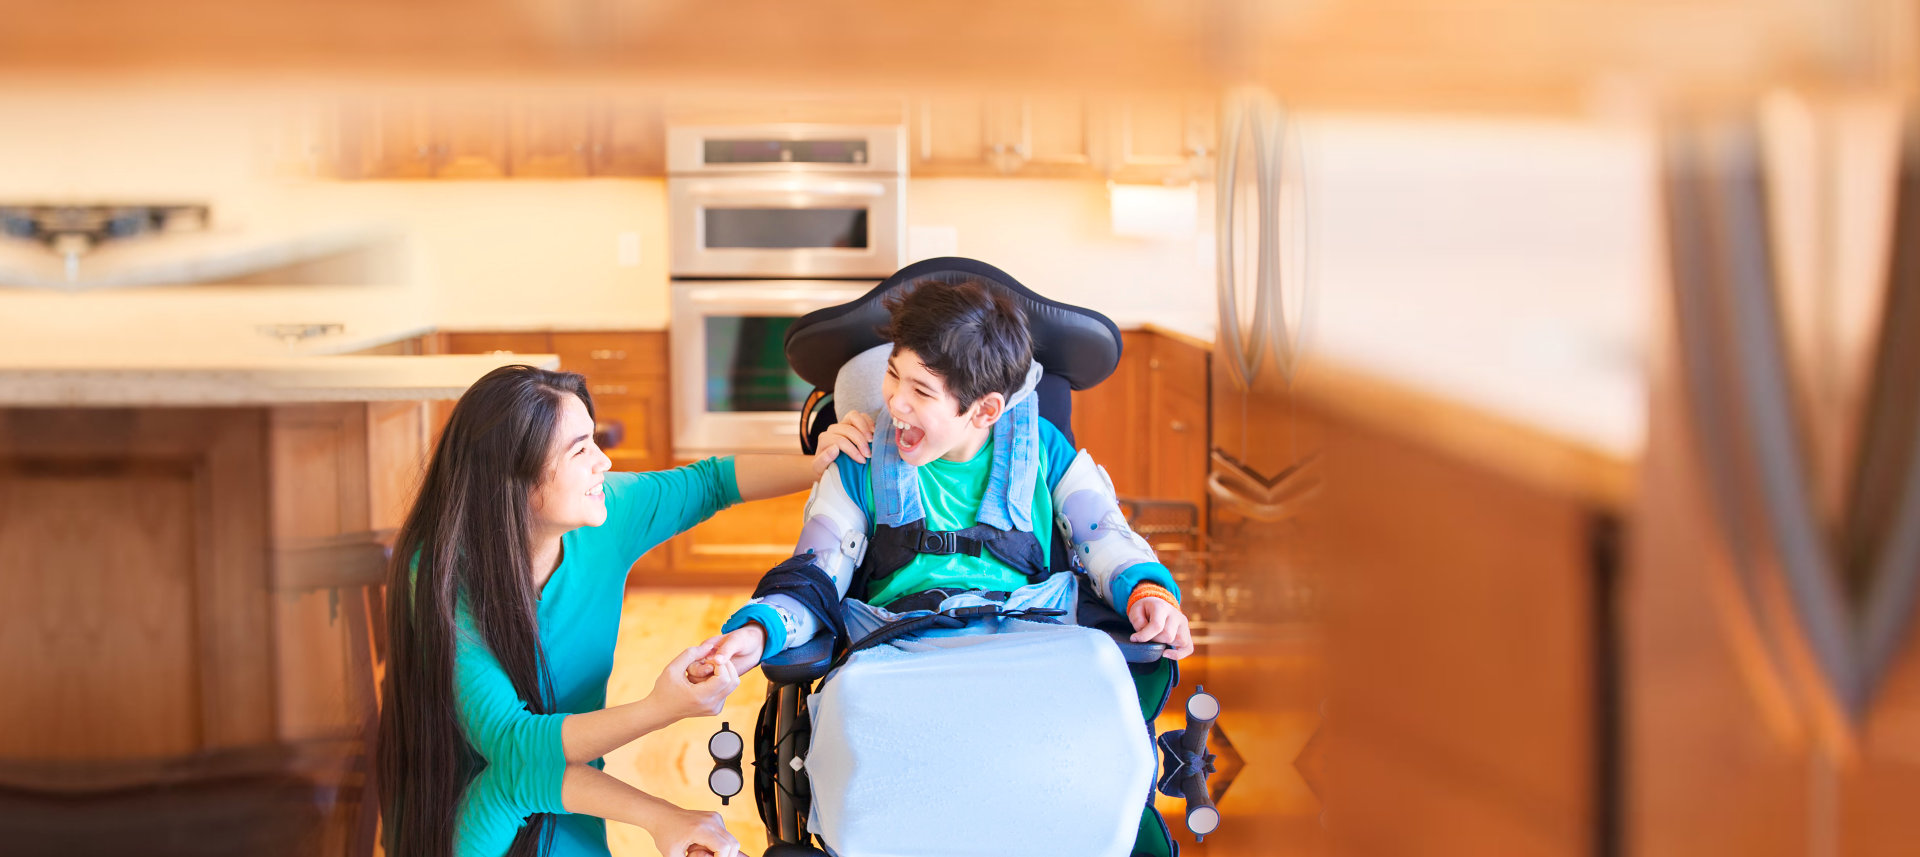 girl and boy with disability smiling